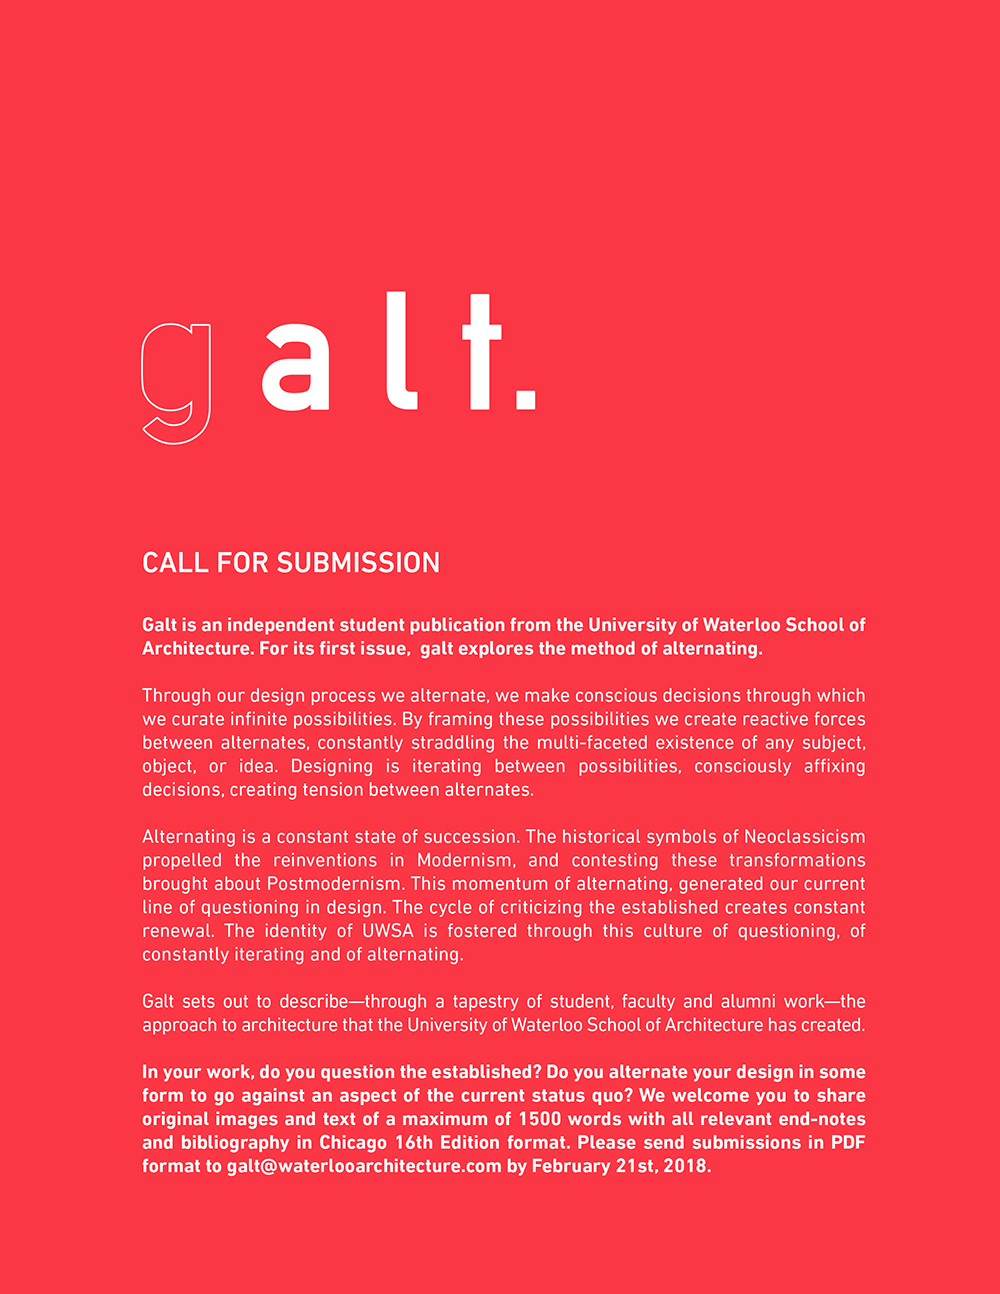 Galt Call for Submissions